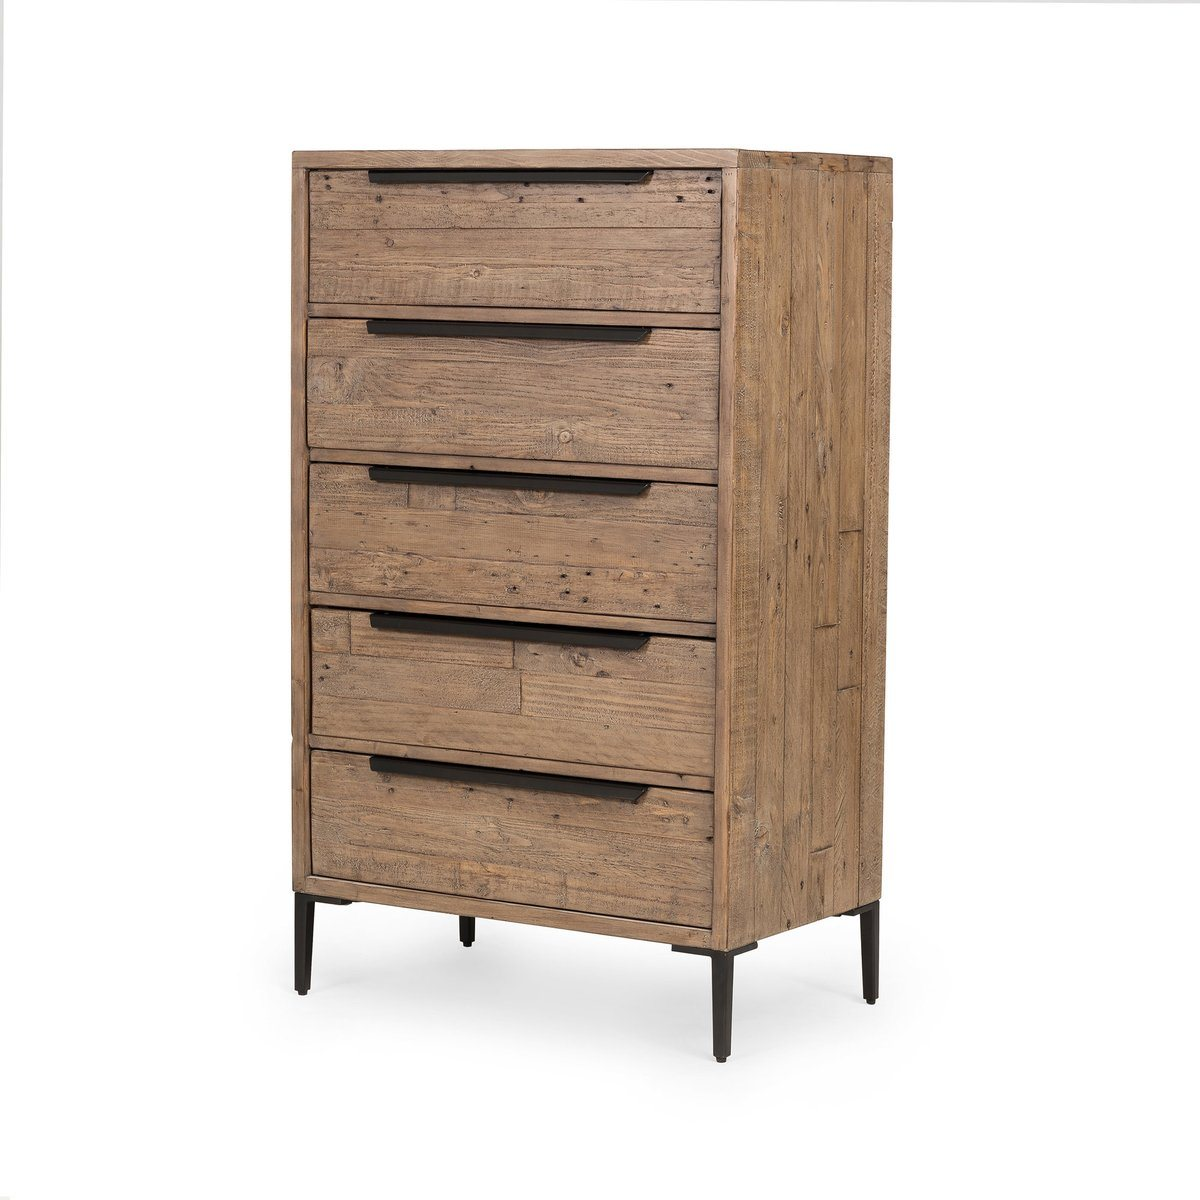 5 DRAWER DRESSER - RUSTIC SUNDRIED ASH - Showhome Furniture